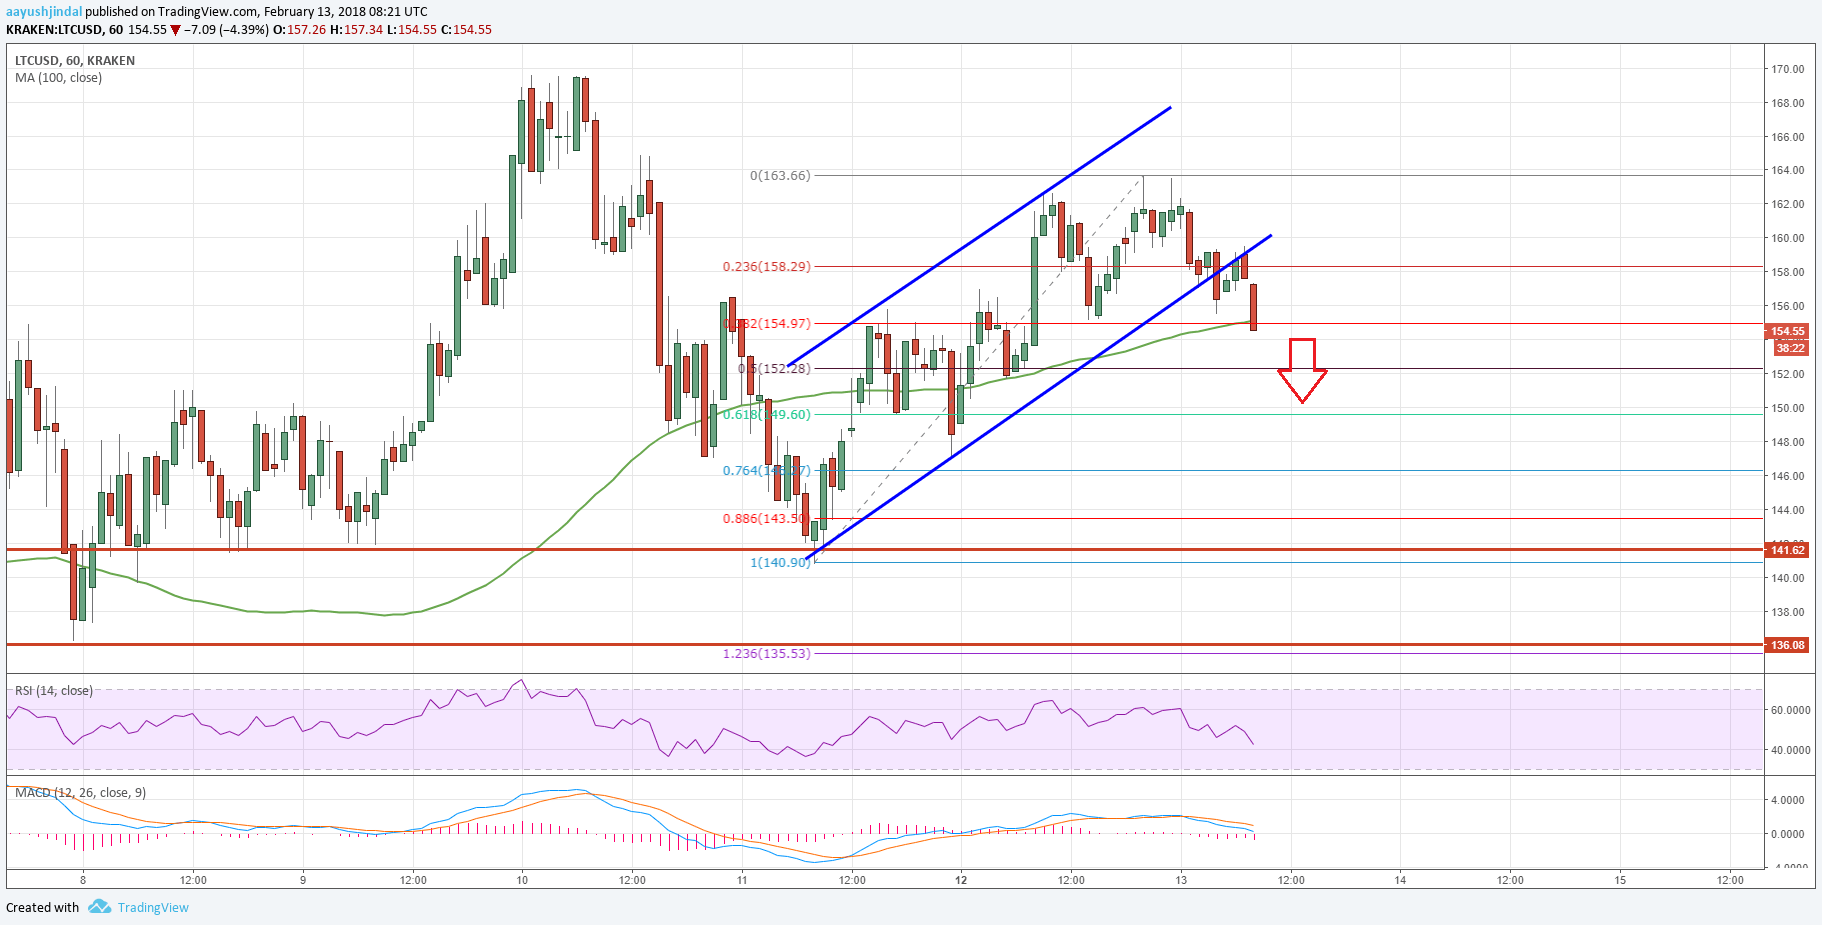 Litecoin Price Analysis: LTC/USD Retreats From $160-165